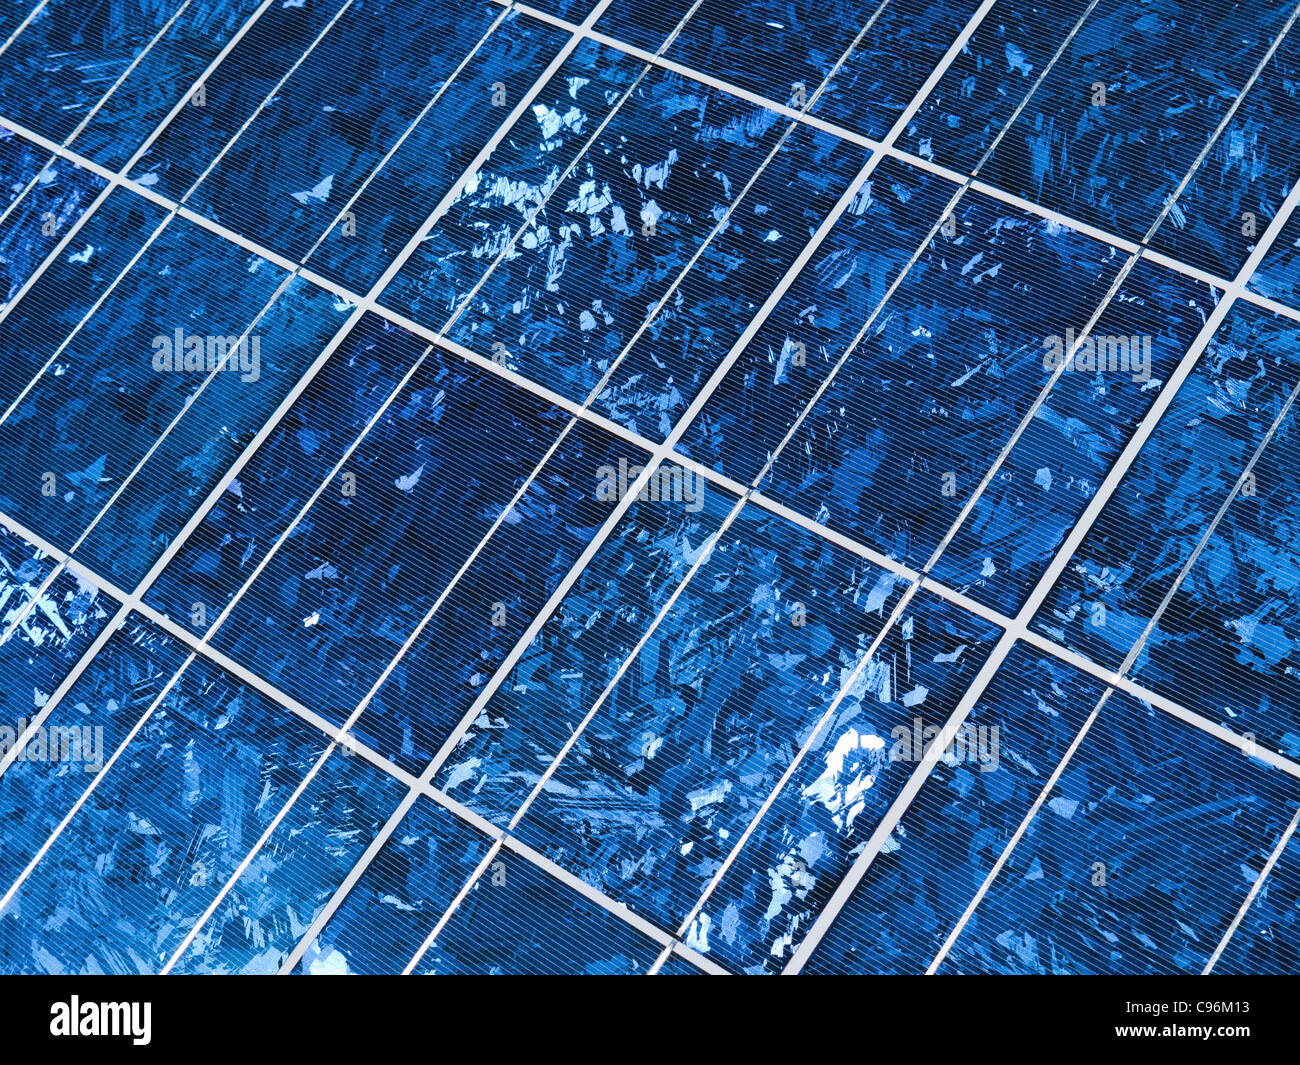 Solar Panels - Stock Image